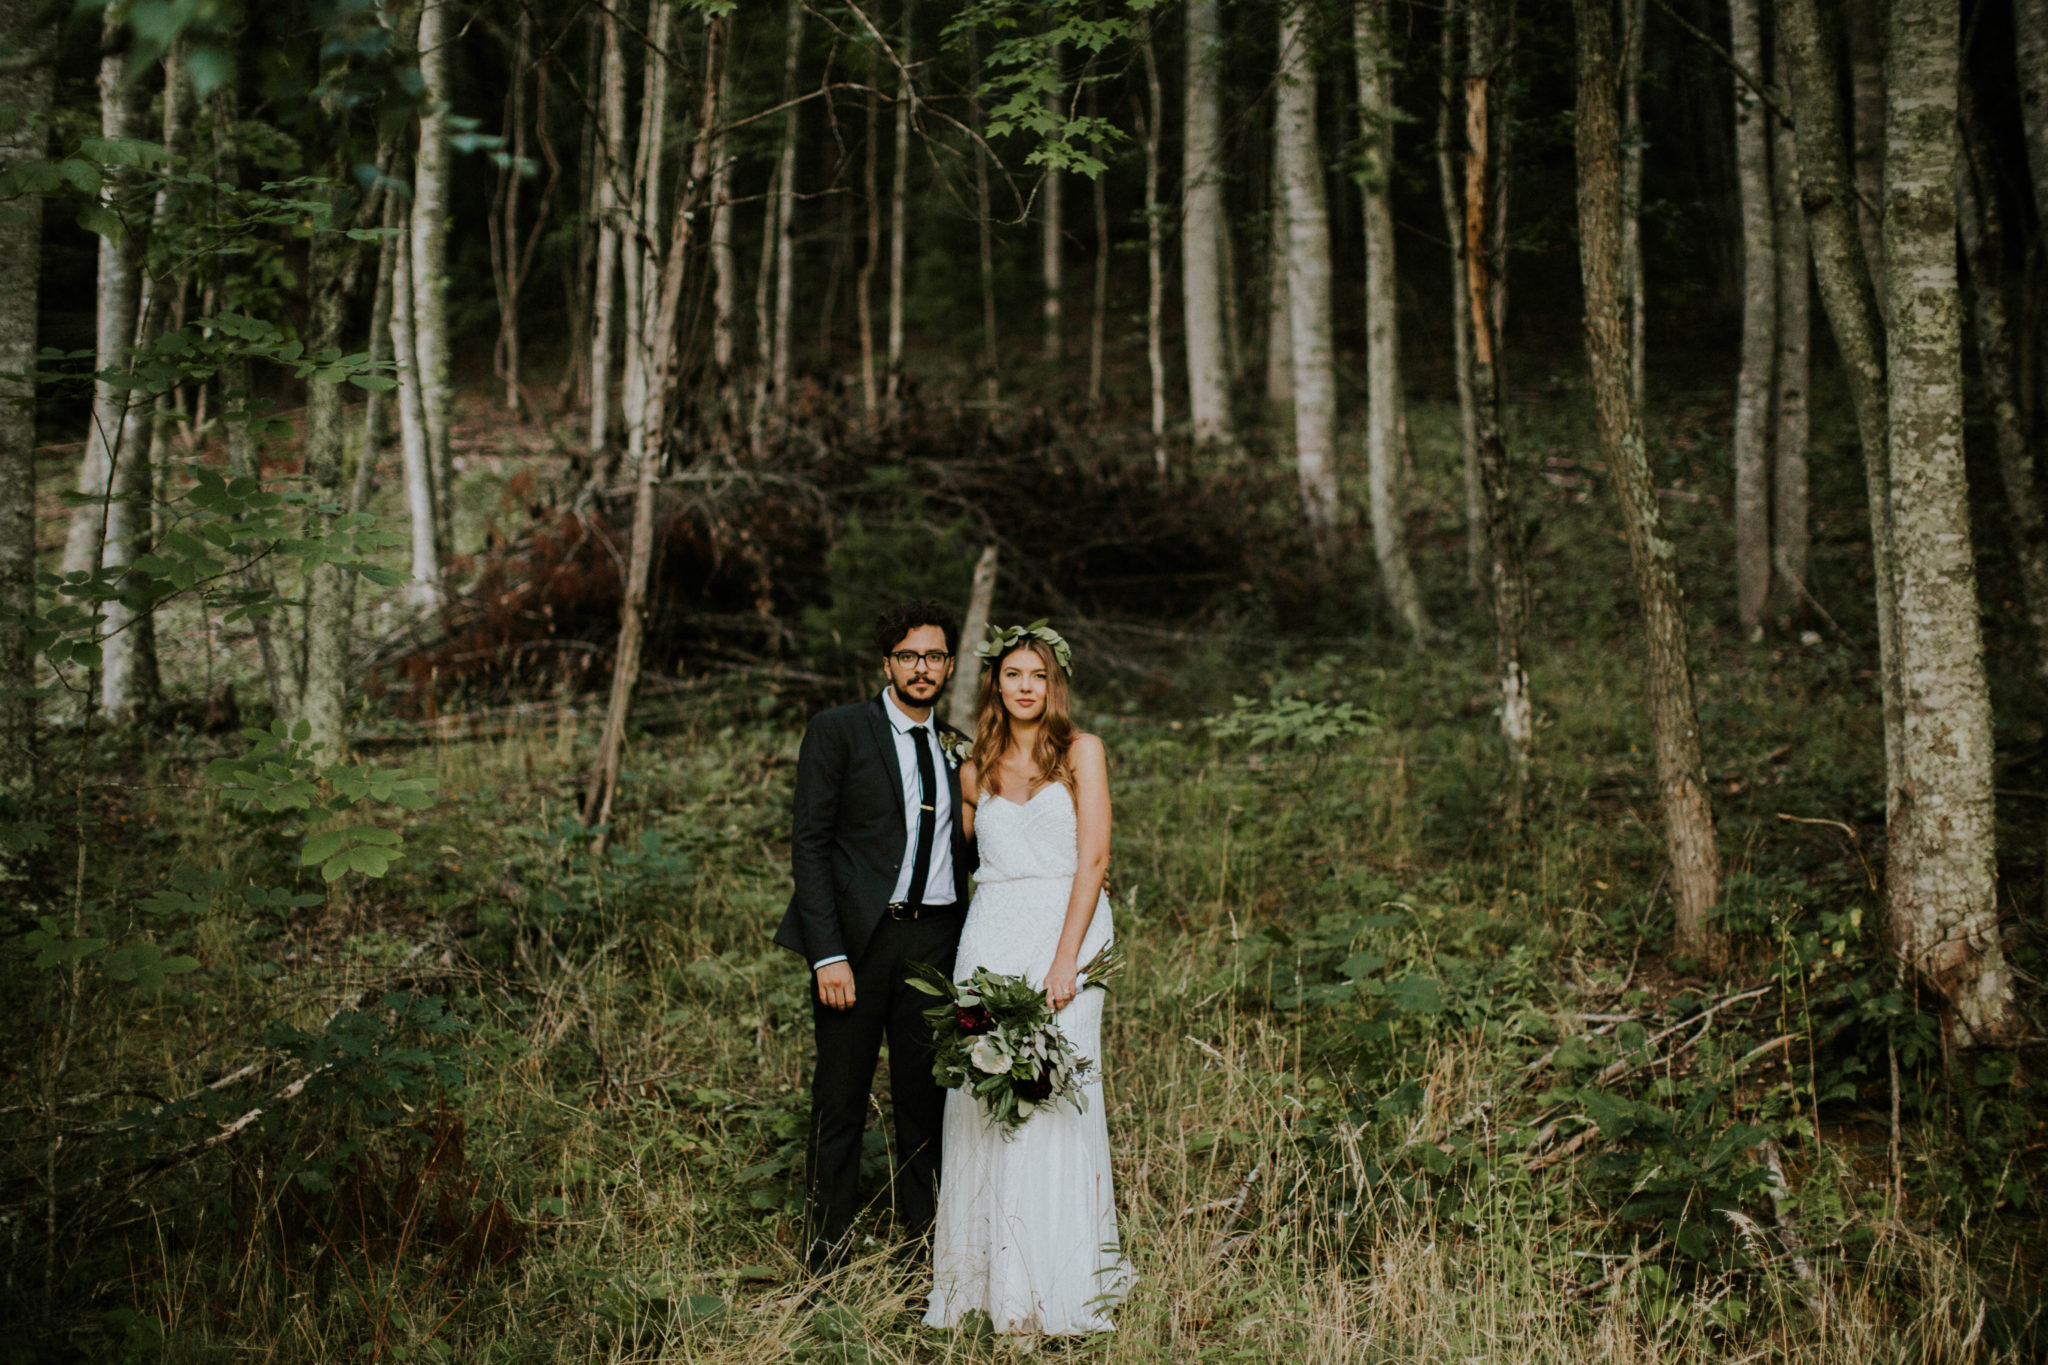 Anna & Jesus North Carolina Mountain Wedding Photographer-780